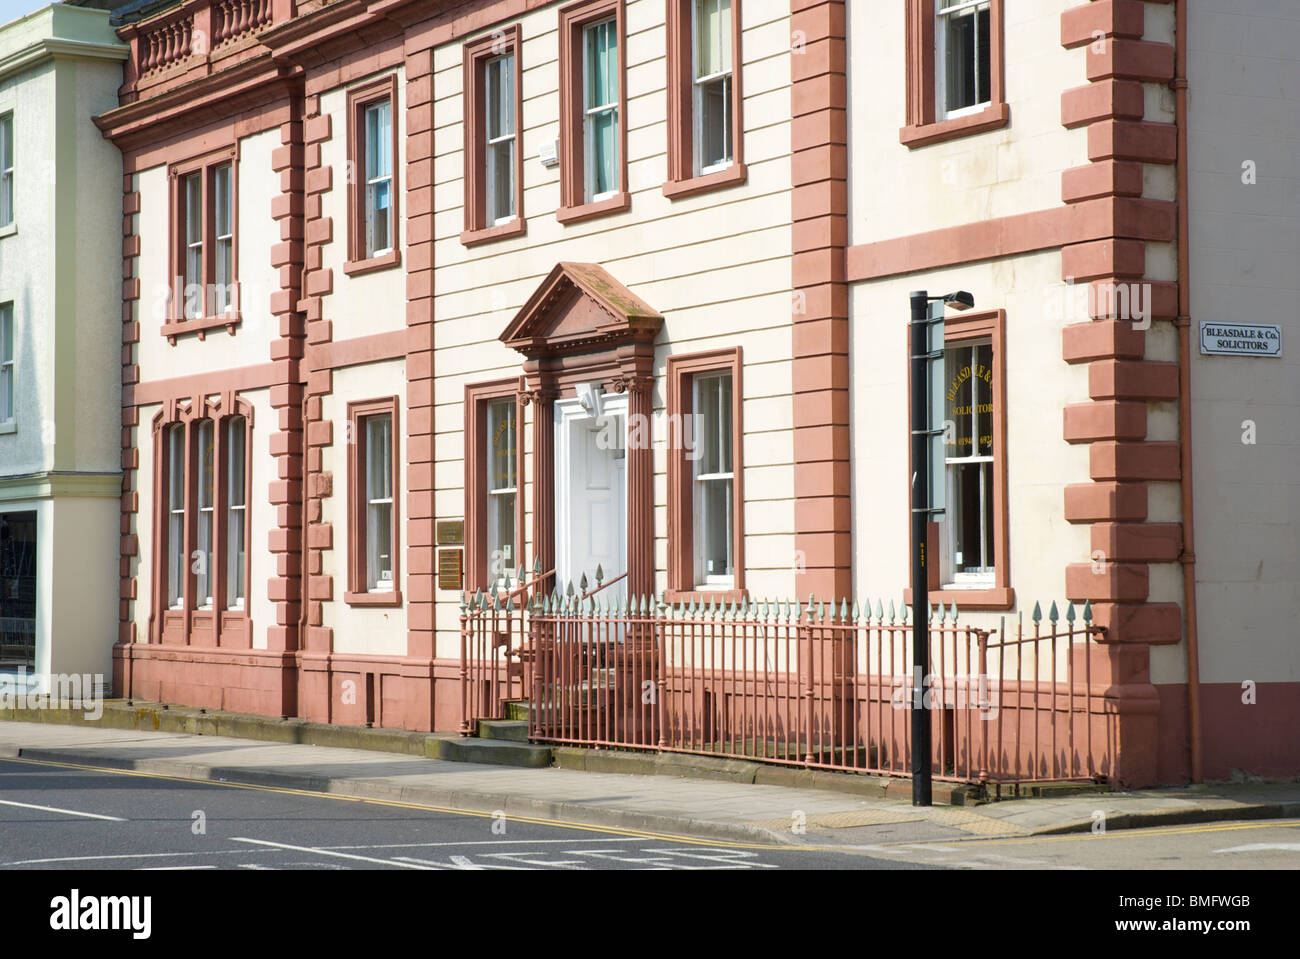 Georgian architecture in Whitehaven, Cumbria, England UK - Stock Image